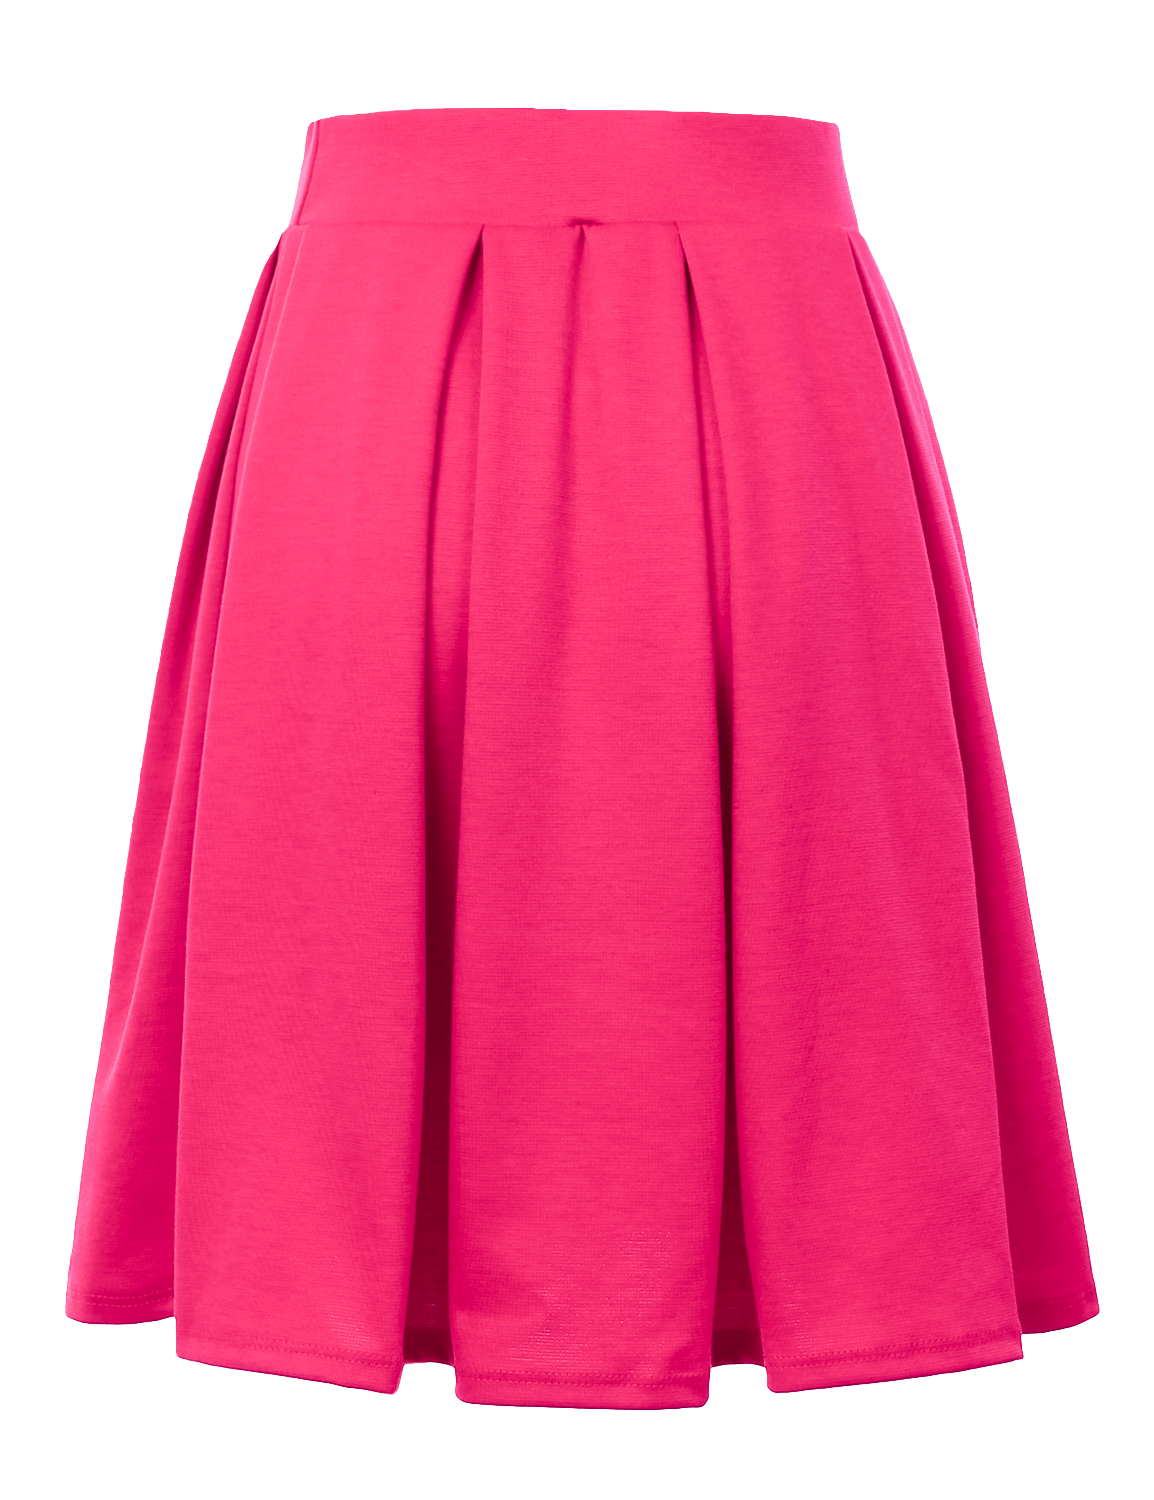 Doublju-Elastic-Waist-Flare-Pleated-Skater-Midi-Skirt-for-Women-with-Plus-Size thumbnail 30